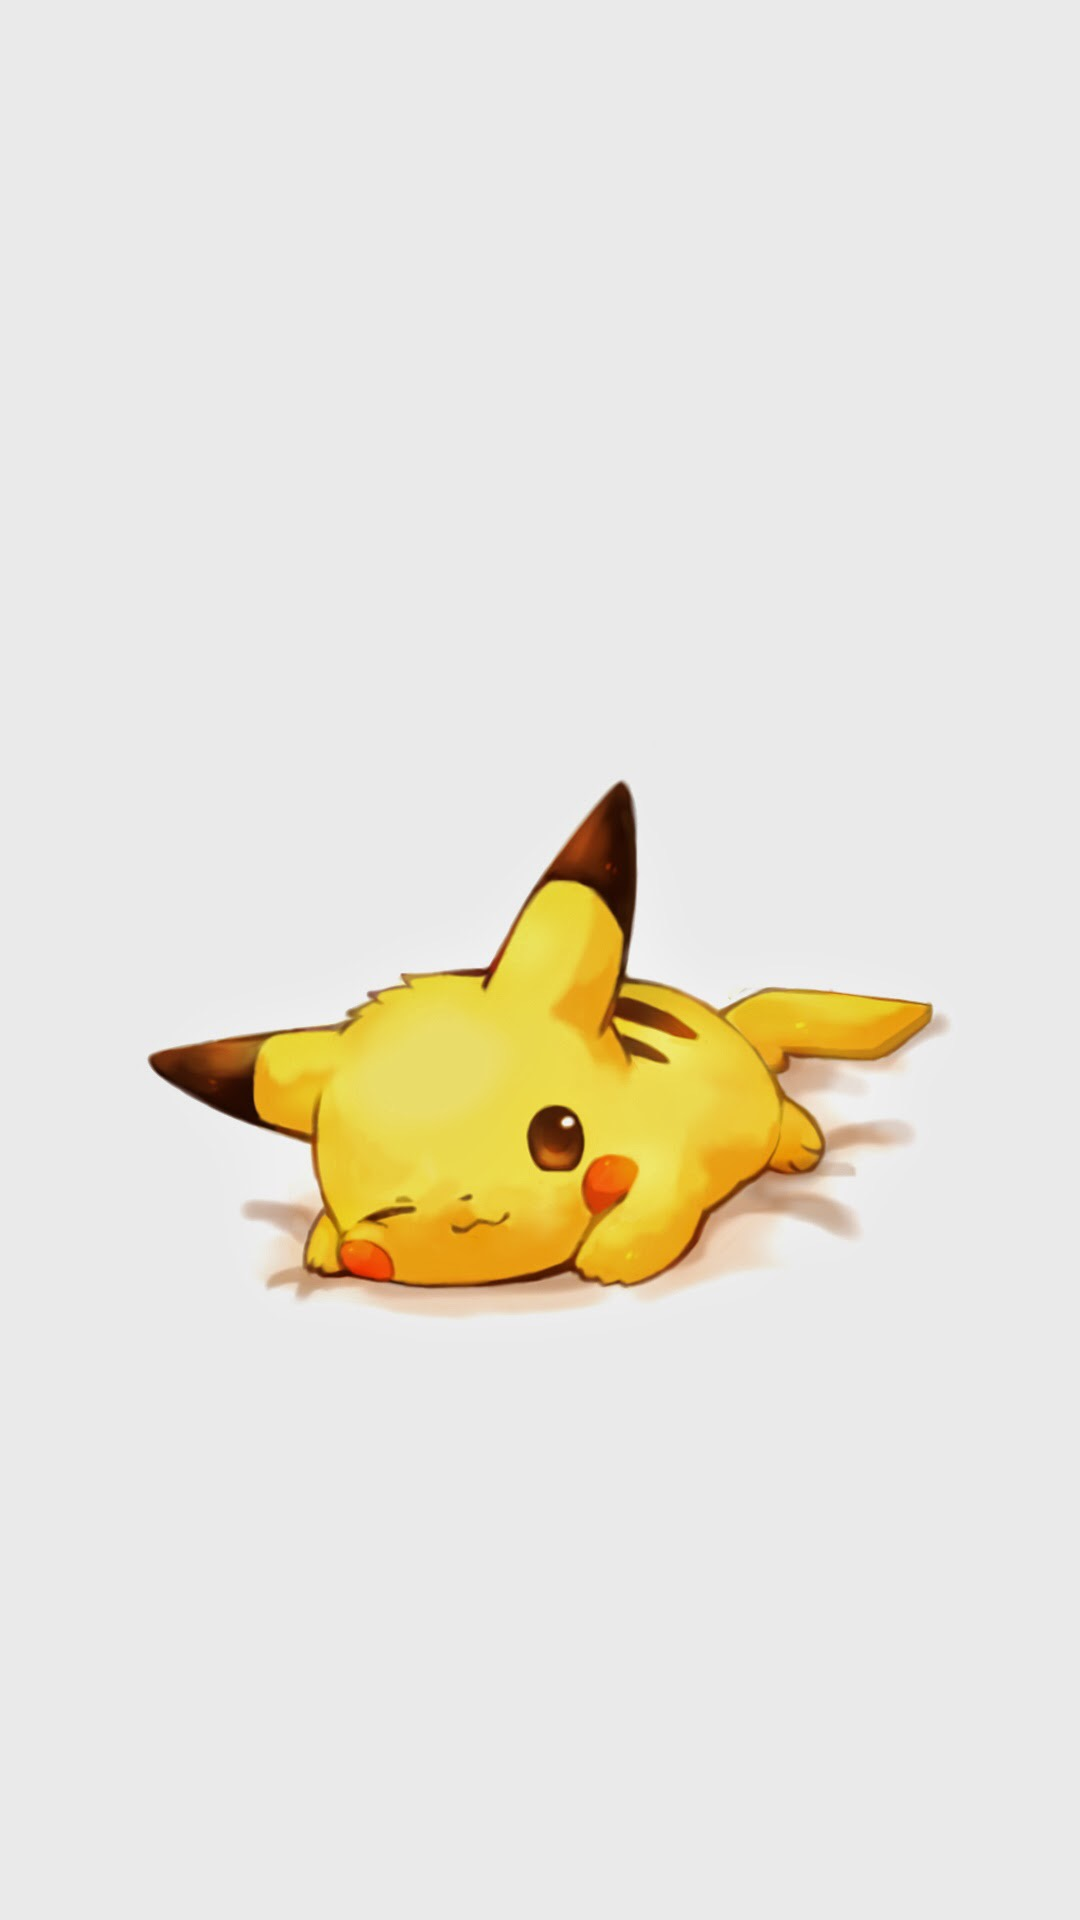 Tap-image-for-more-funny-cute-Pikachu-Pikachu-mobile-for-iPhone-s-c-wallpaper-wp380308